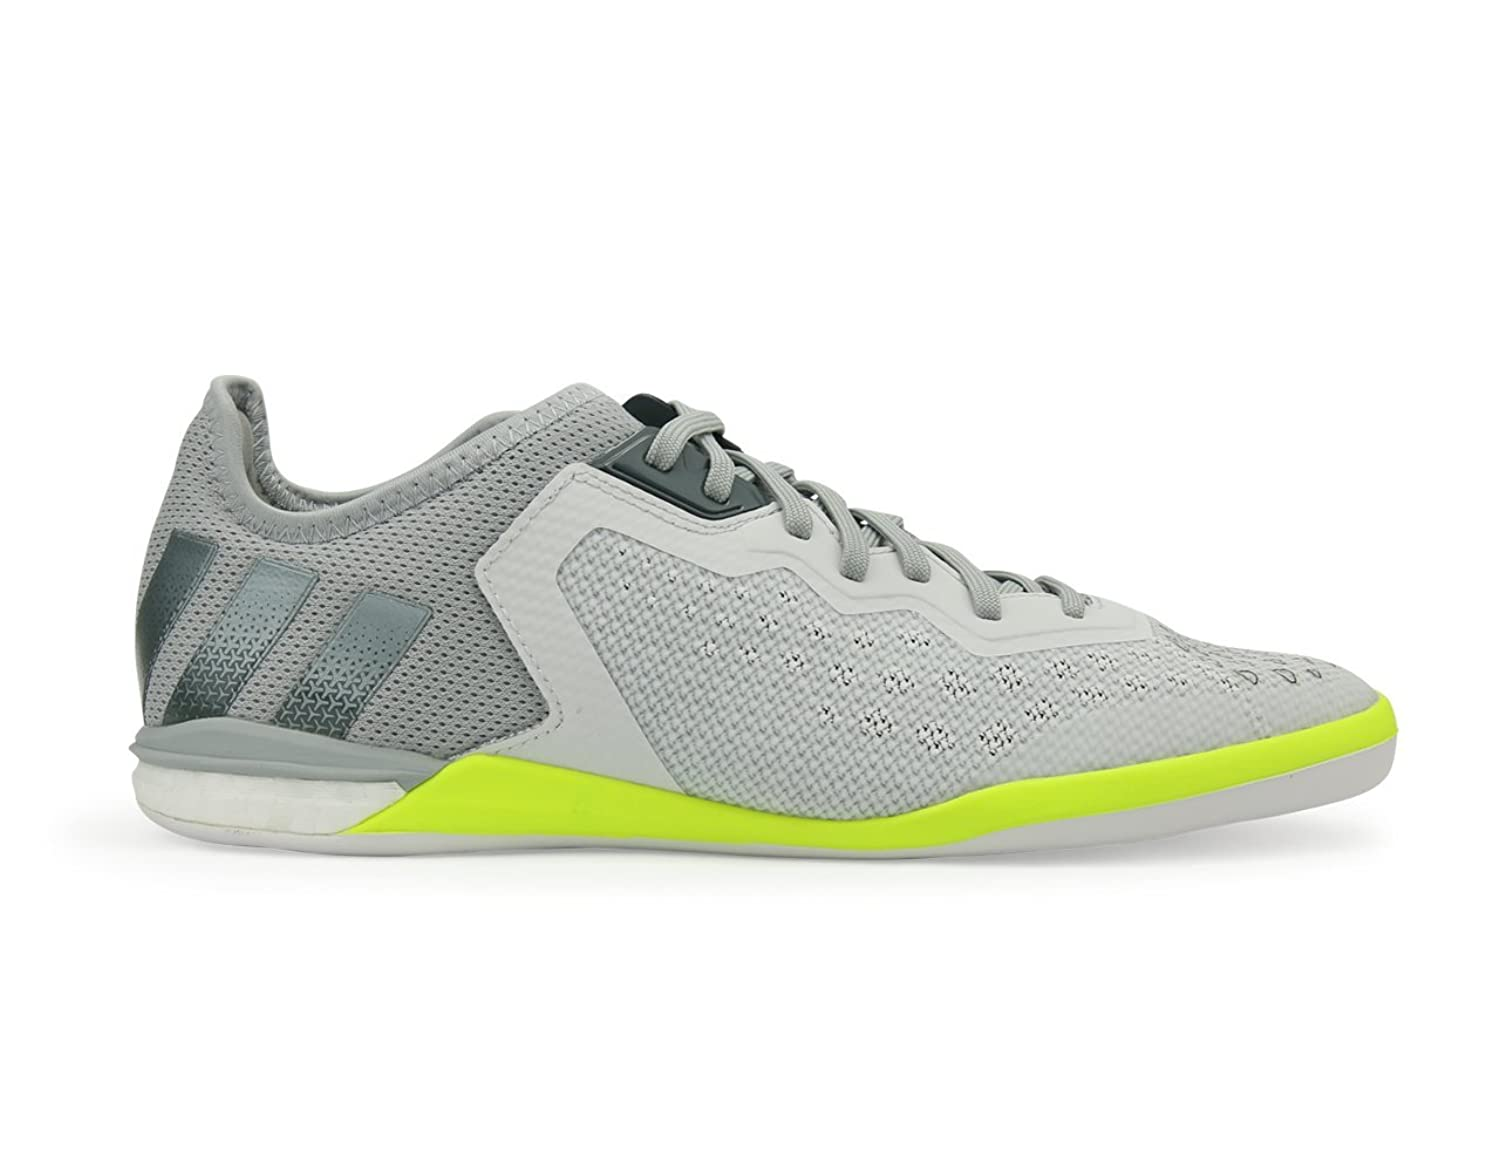 Adidas Men's Ace 16.1 Court Indoor Crystal White/Onix/Solar/Yellow Soccer Shoes